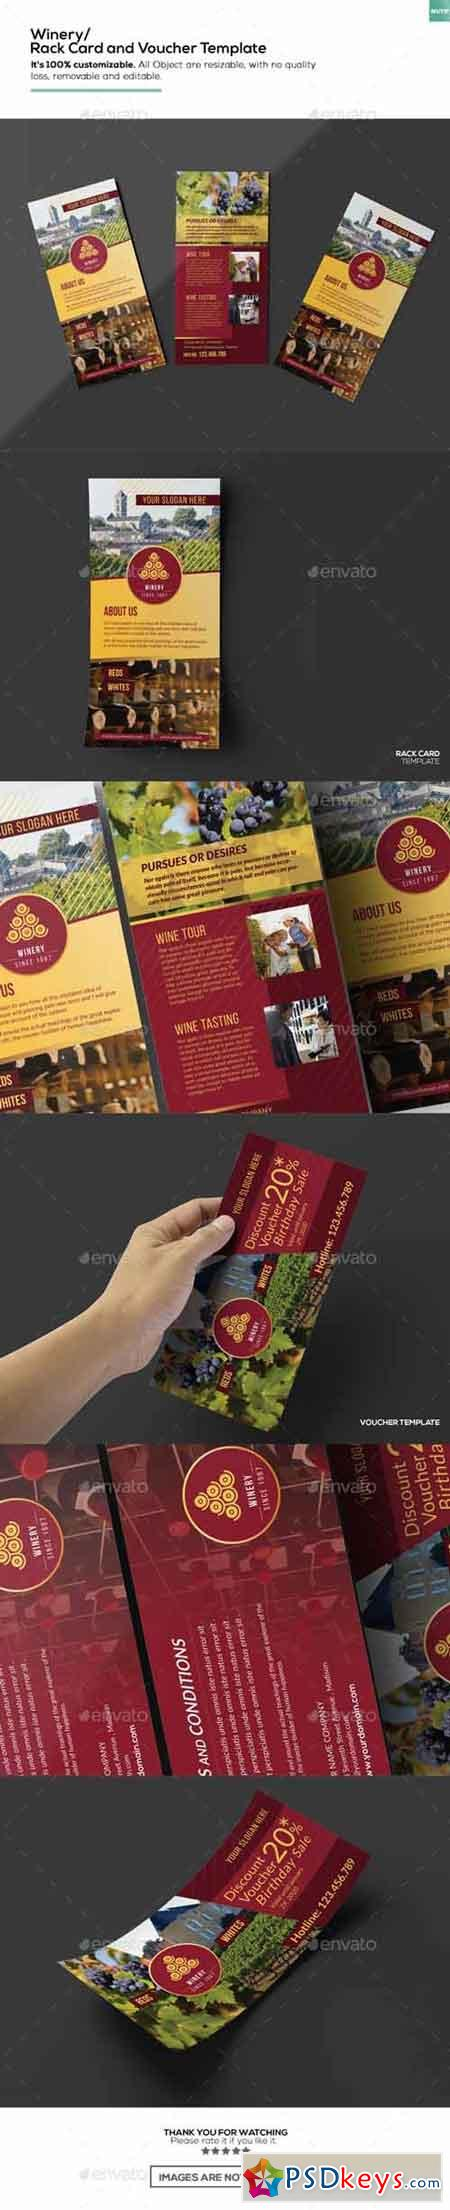 Winery Rack Card and Voucher Template 15911229